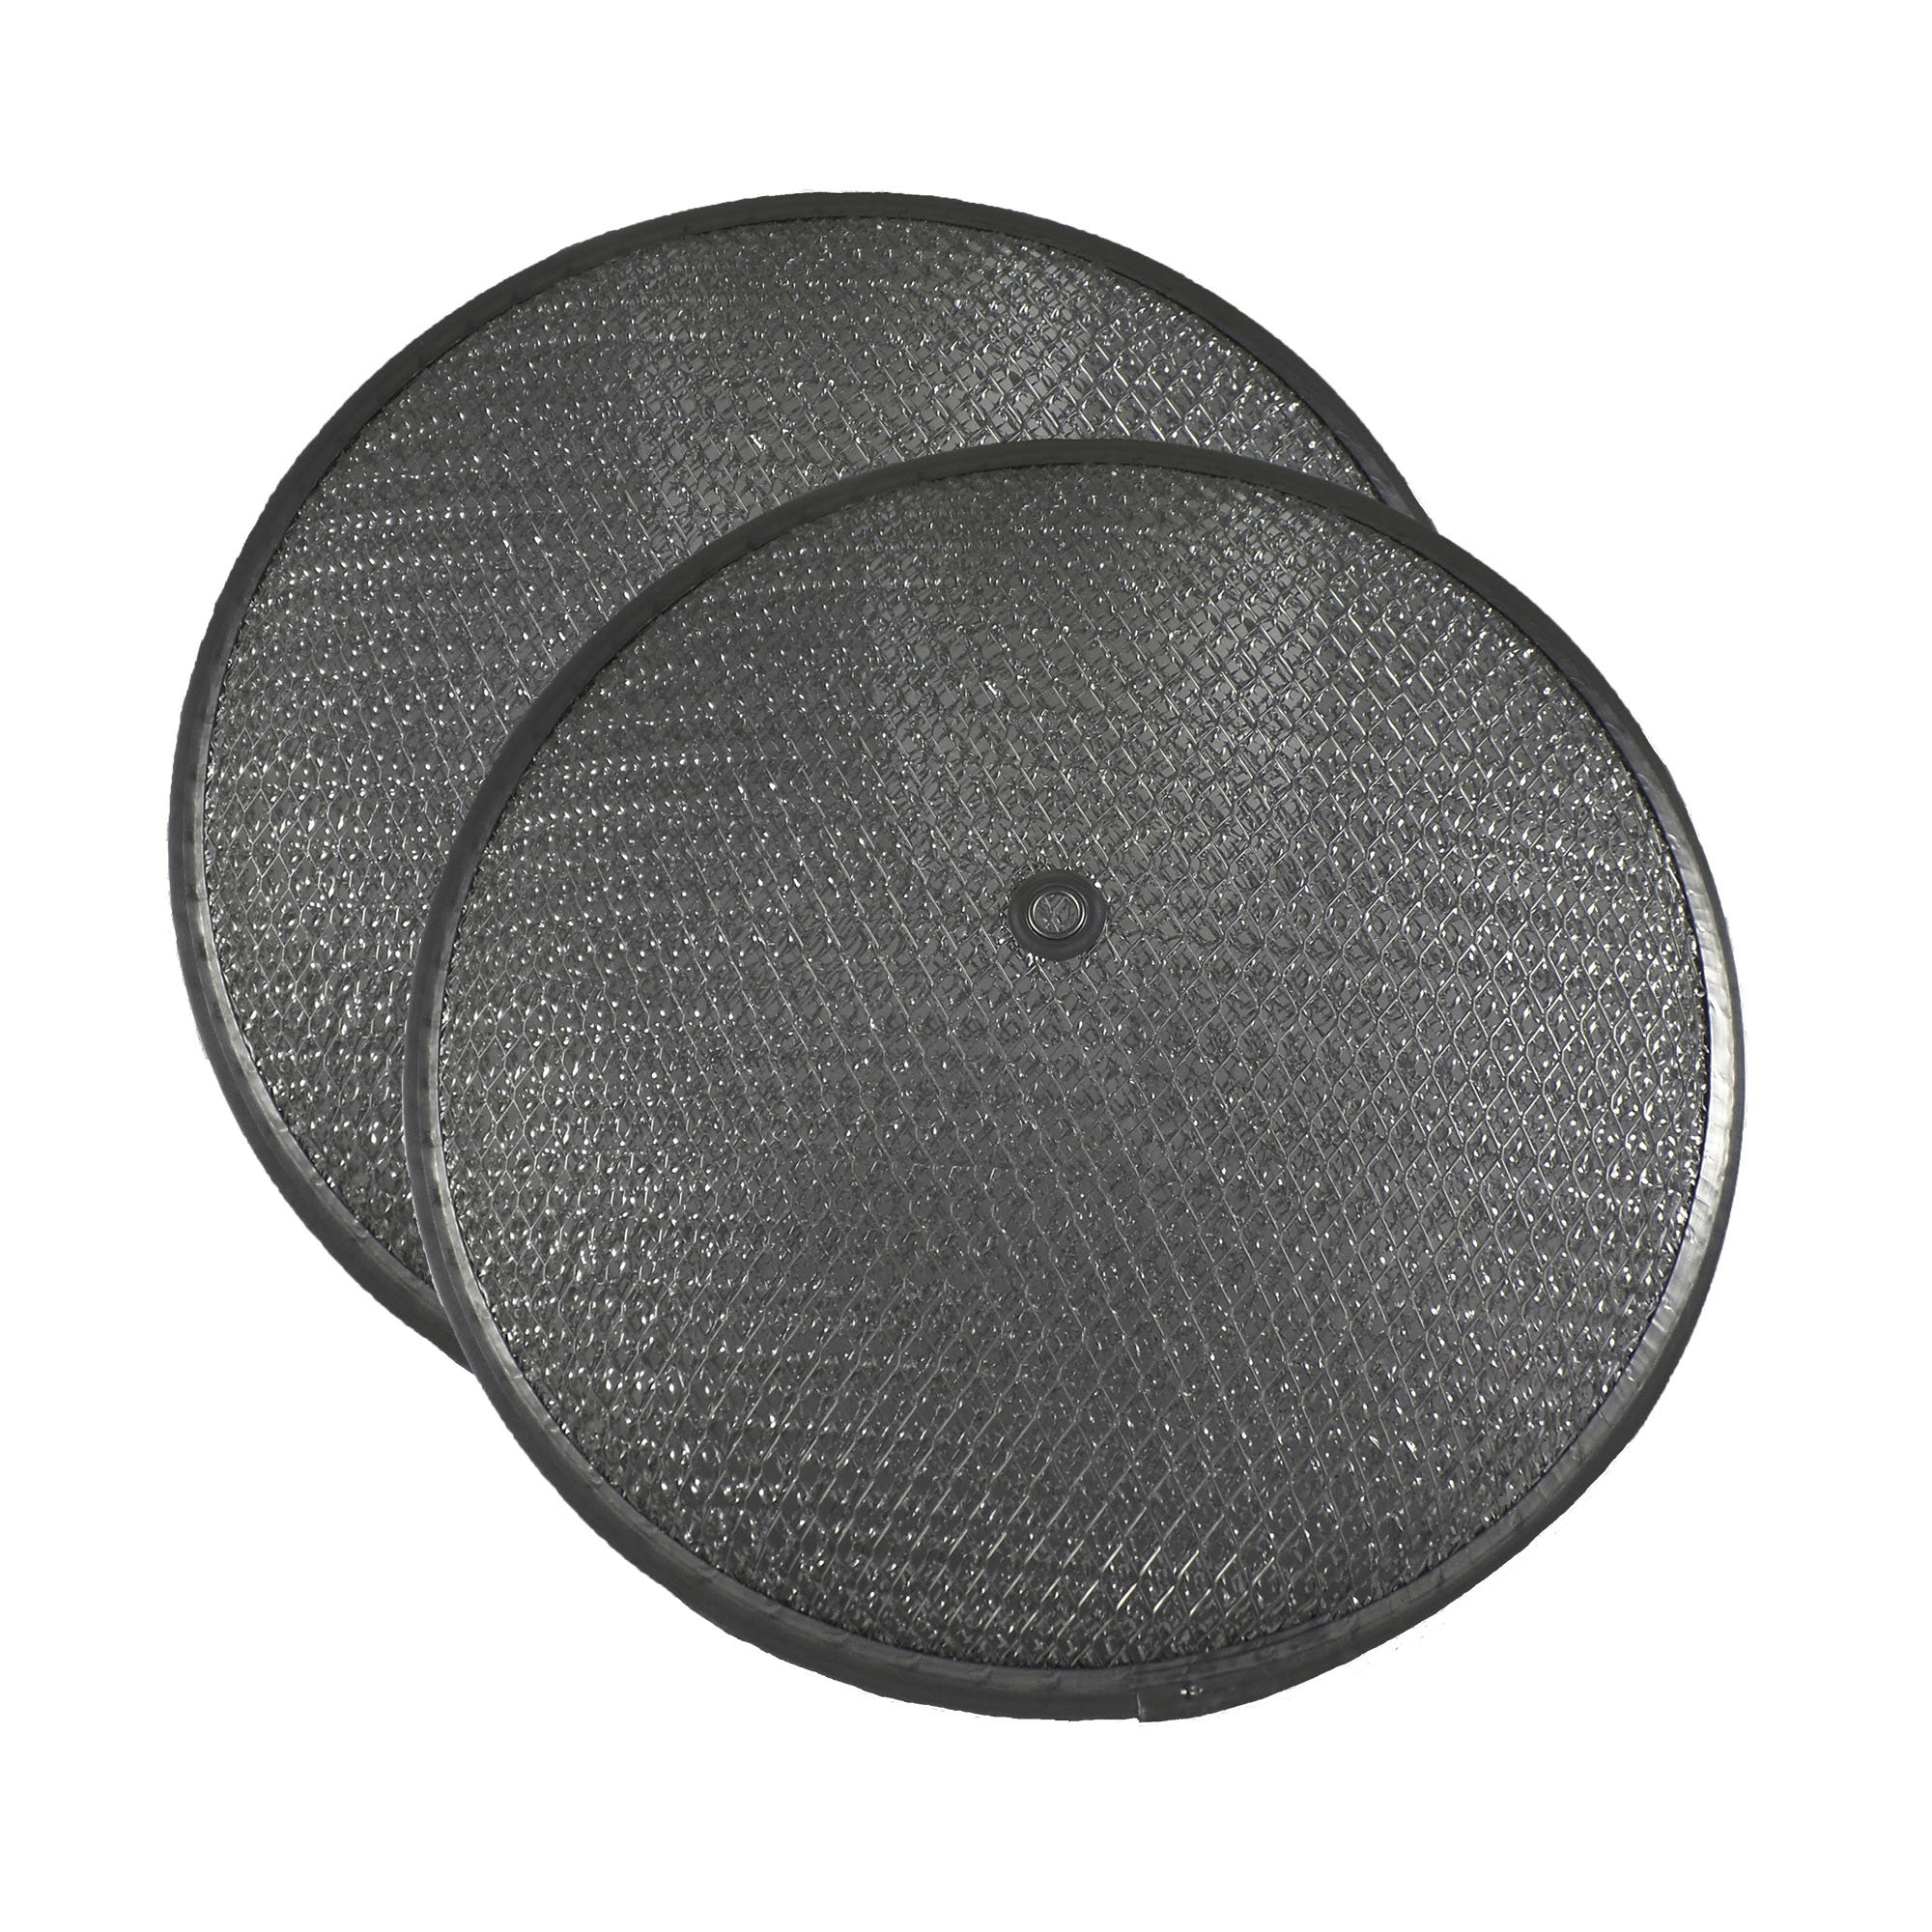 2 PACK Air Filter Factory 10-1/2 x 1-1/4 RISE WITH CENTER HOLE Range Hood Aluminum Grease Dome Filters AFF44-1D